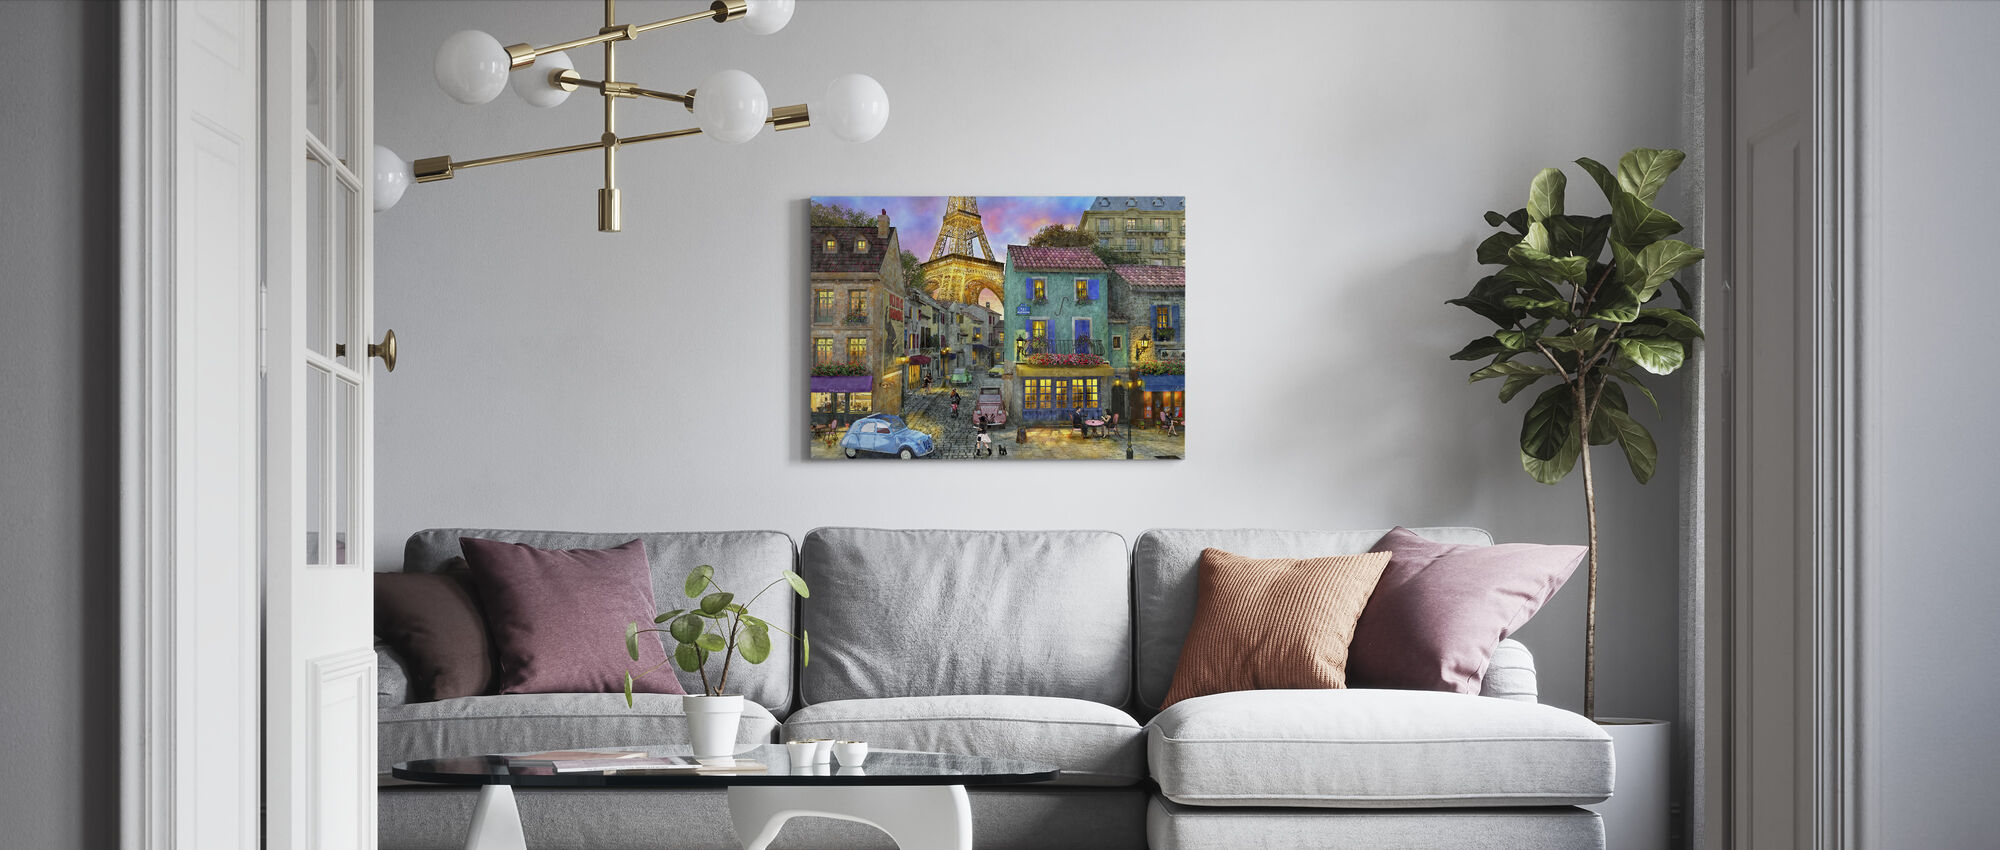 Paris Streets - Canvas print - Living Room